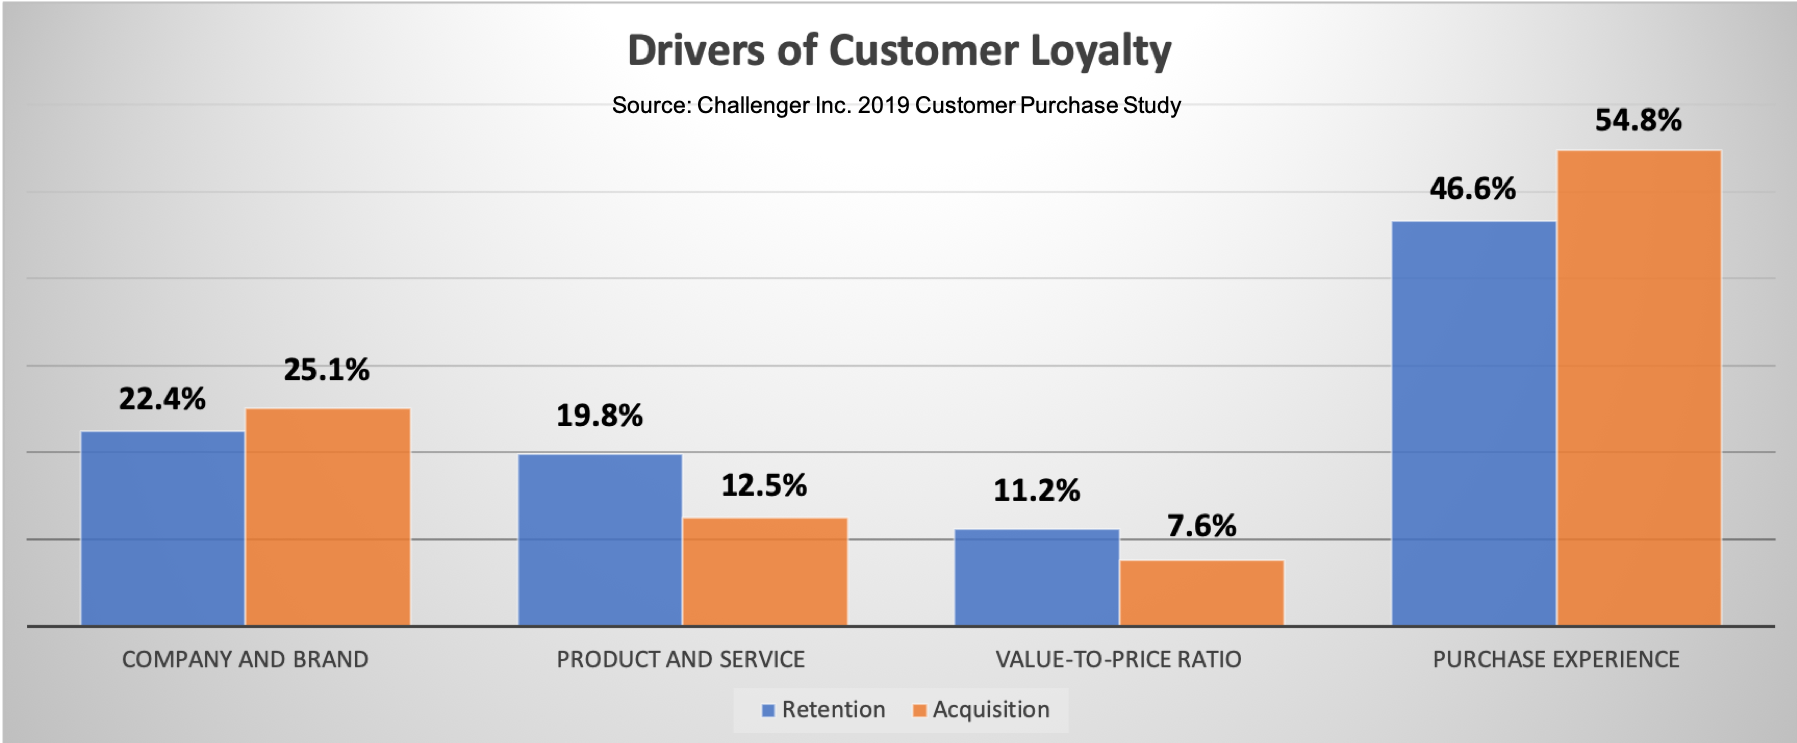 Drivers of Customer Loyalty 2